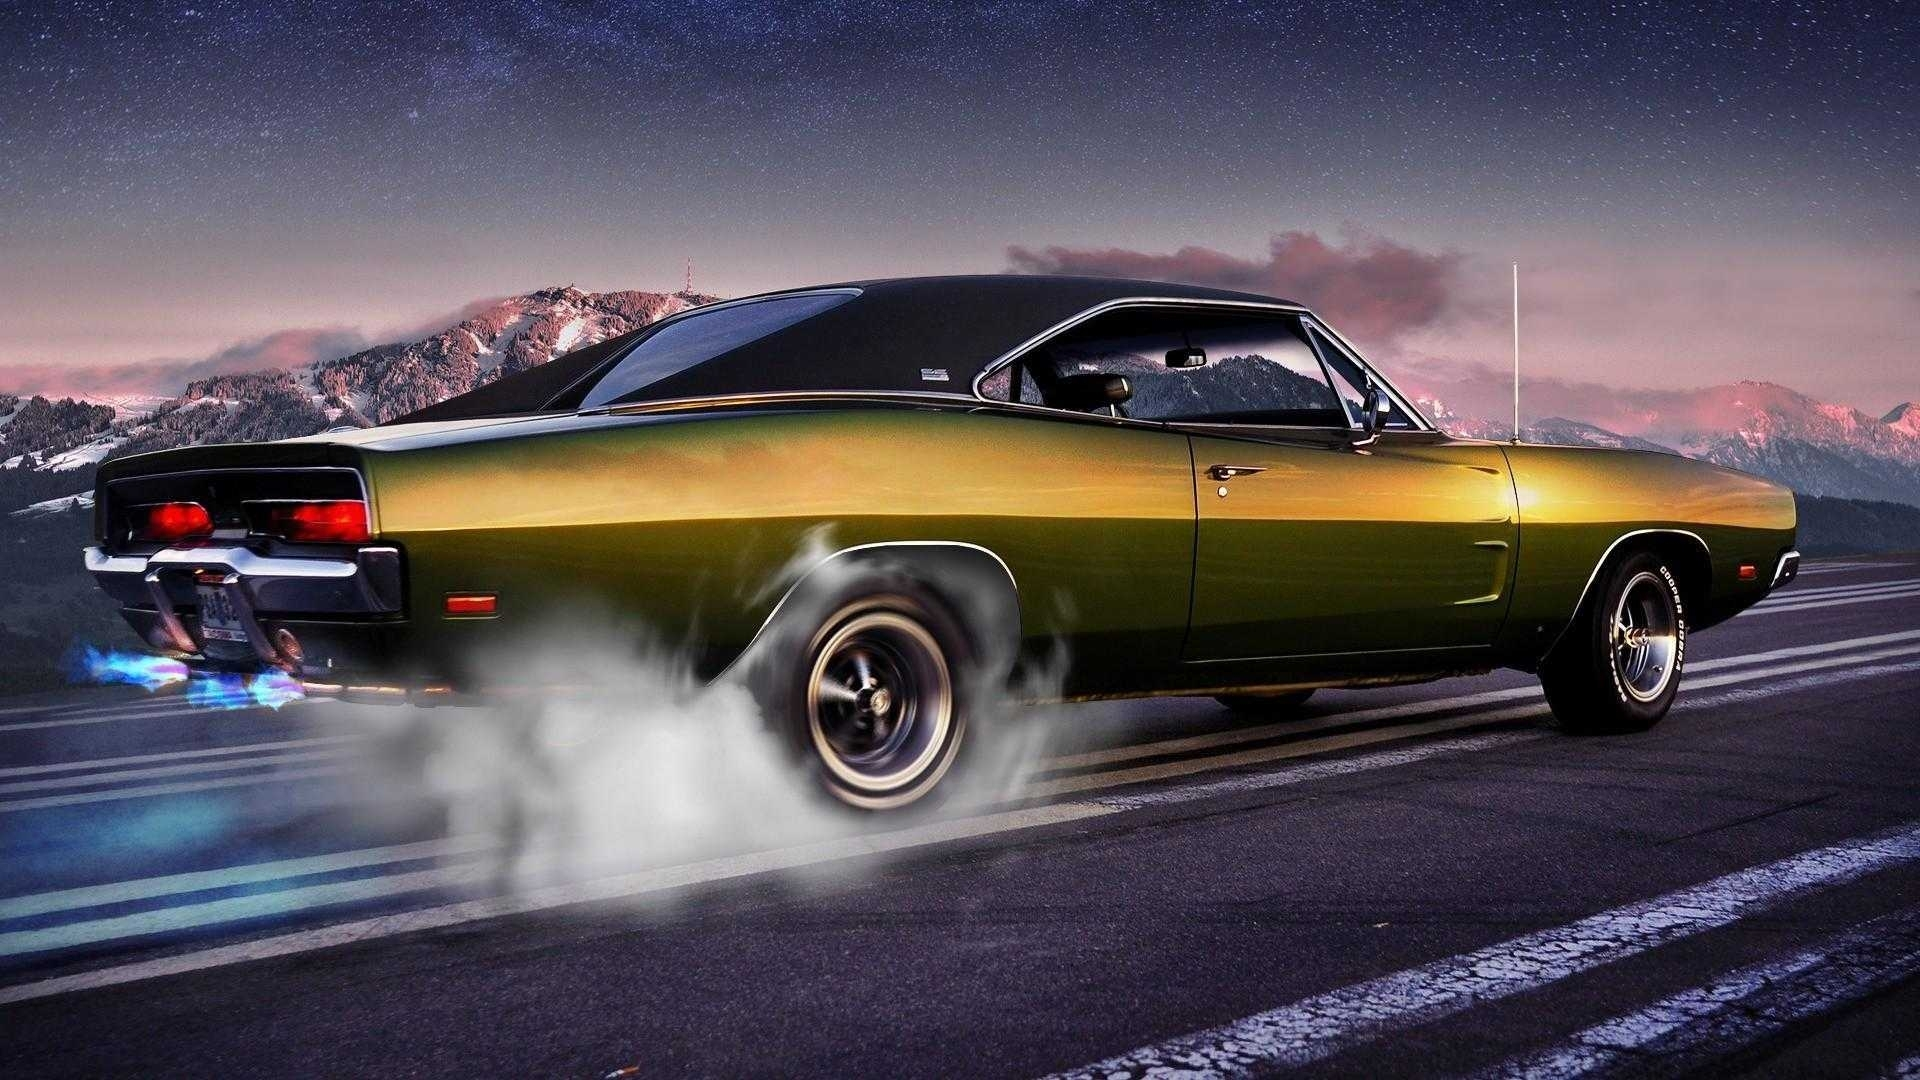 10 Top Classic Muscle Cars Wallpapers FULL HD 1920×1080 For PC Desktop